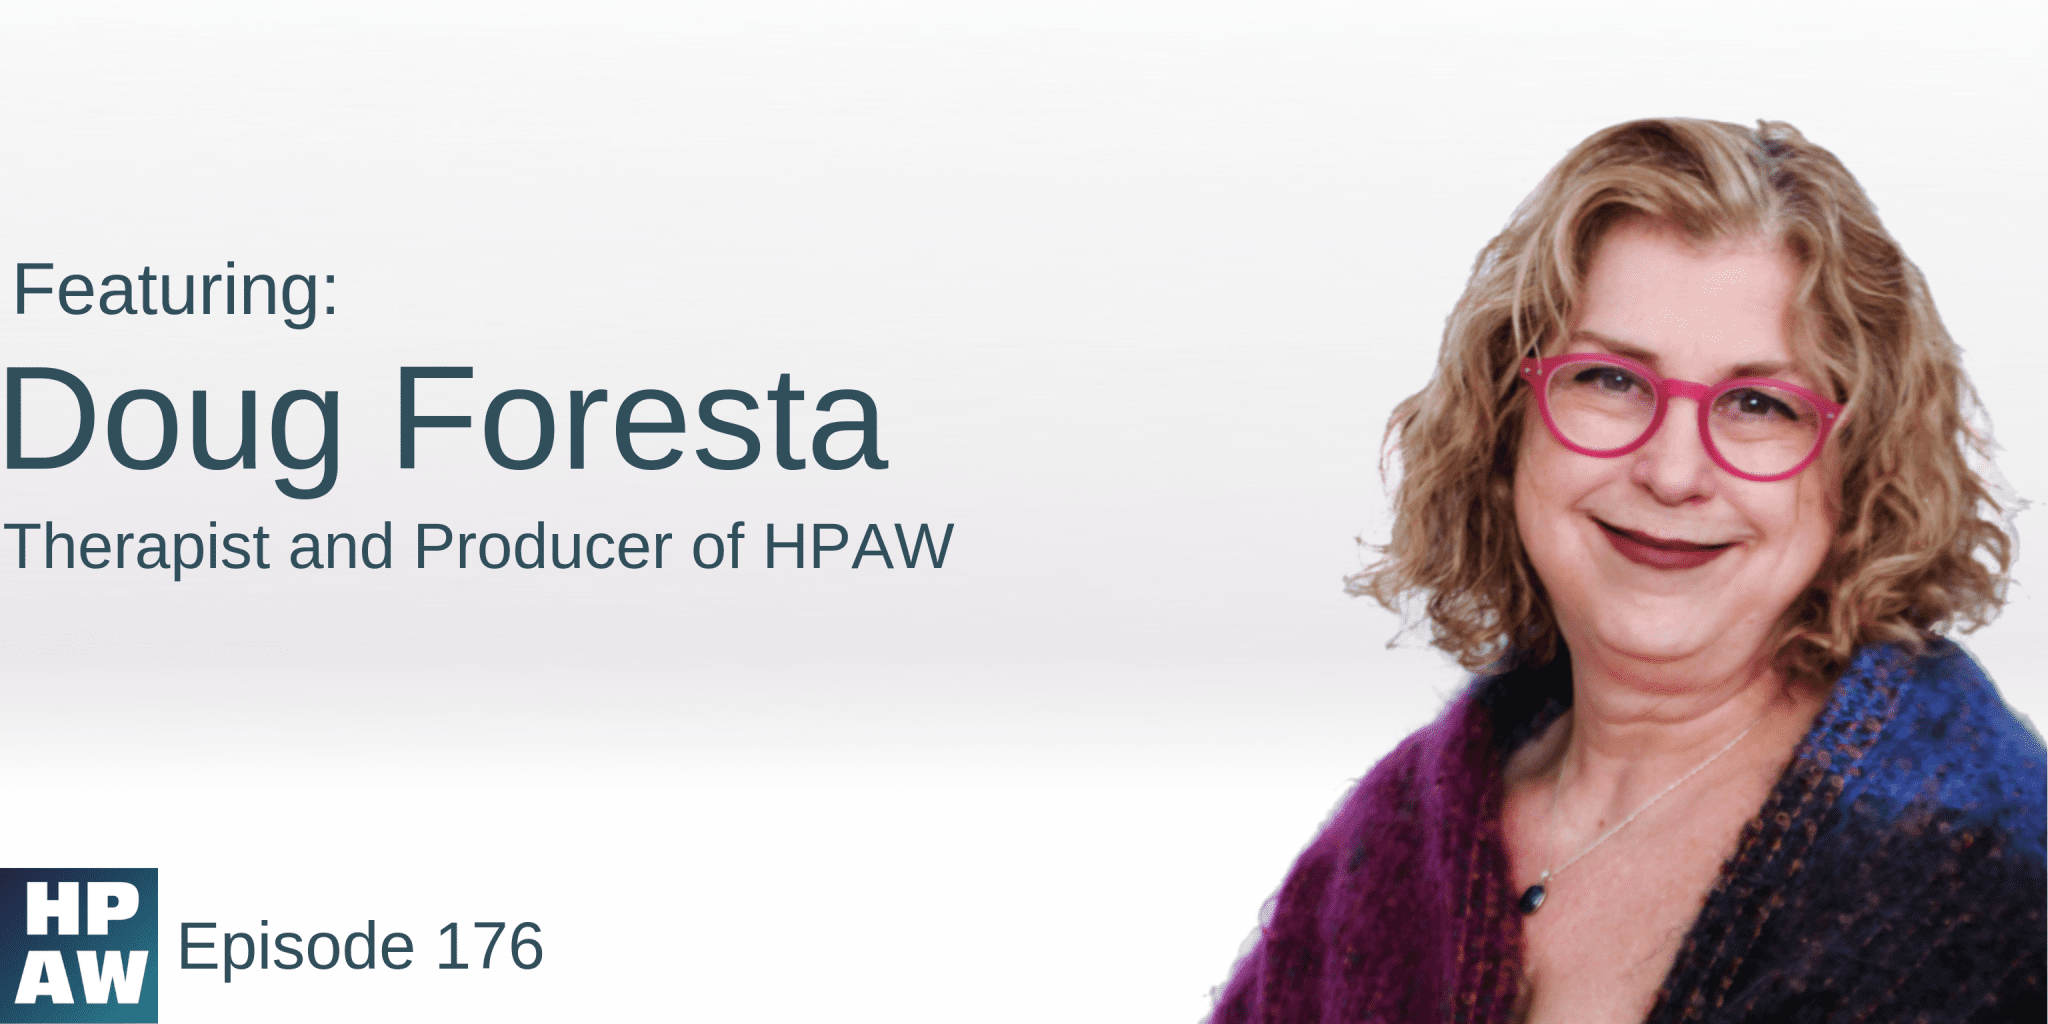 Photo of Debra Ruh, Besides reads: Doug Foresta, Therapist and Producer of HPAW